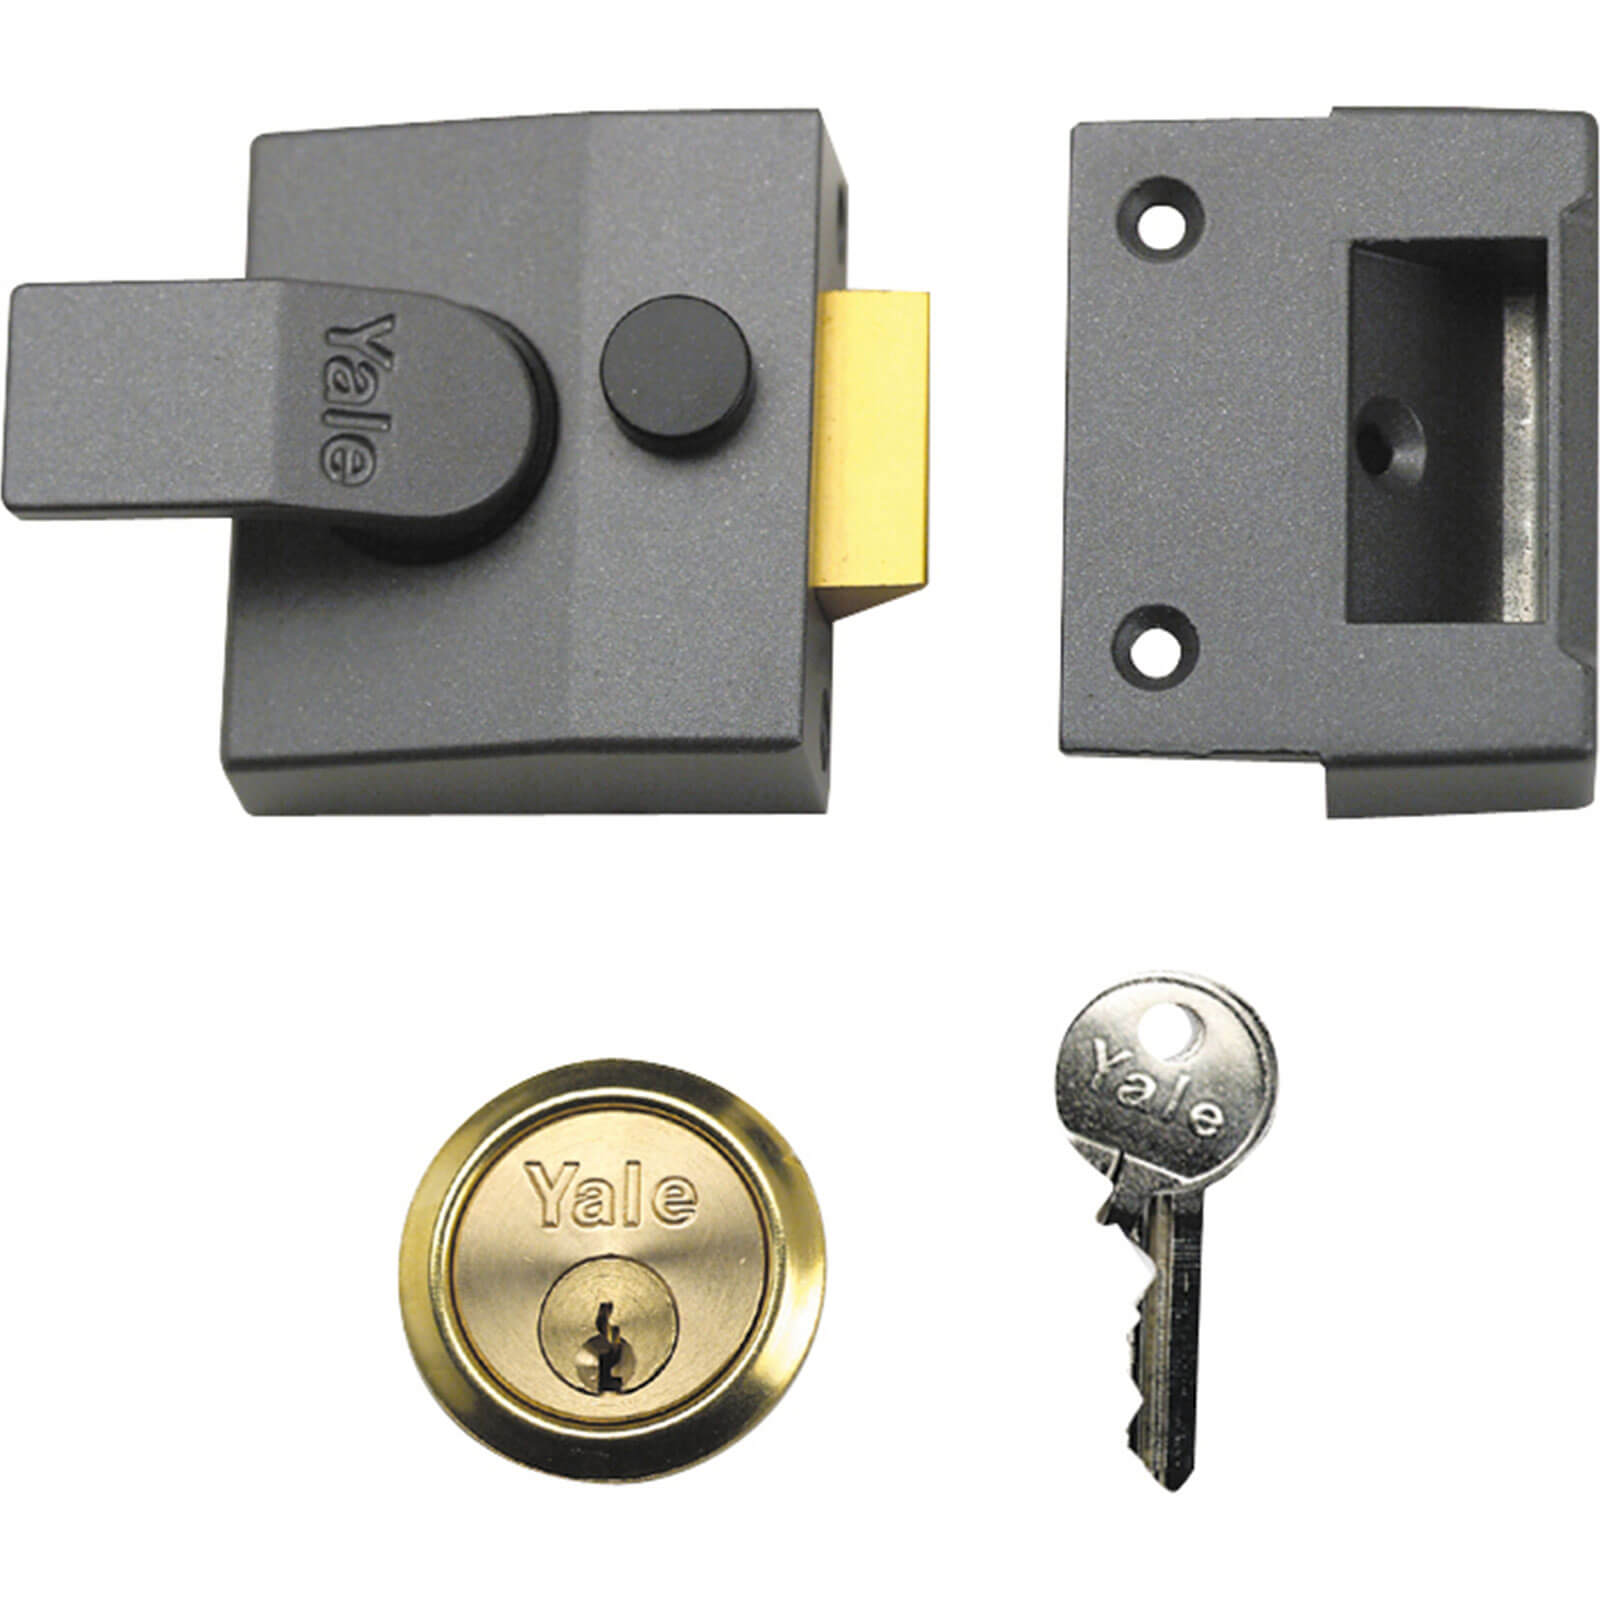 Yale Locks P85 Deadlocking Nightlatch Brasslux Finish 40mm